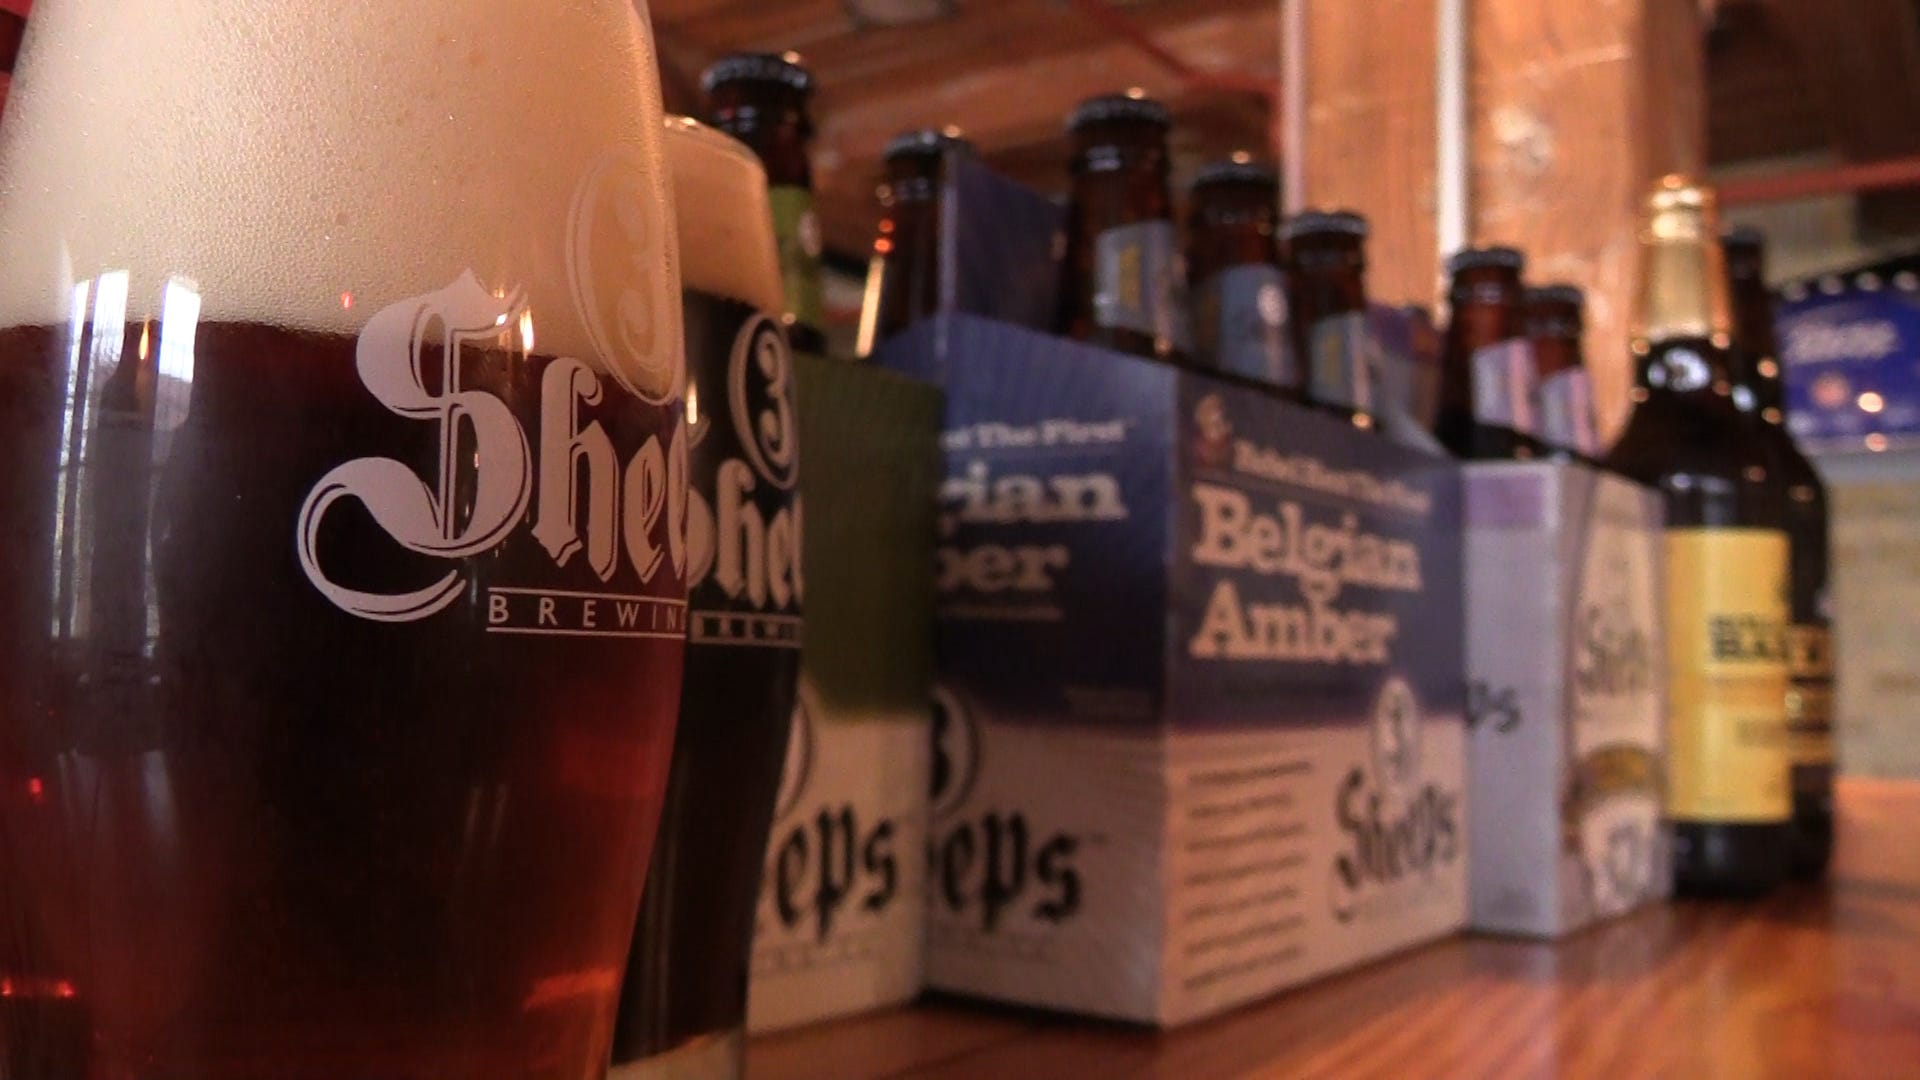 WisBrewView: 3 Sheeps Brewing Co. offers a brew for every palate